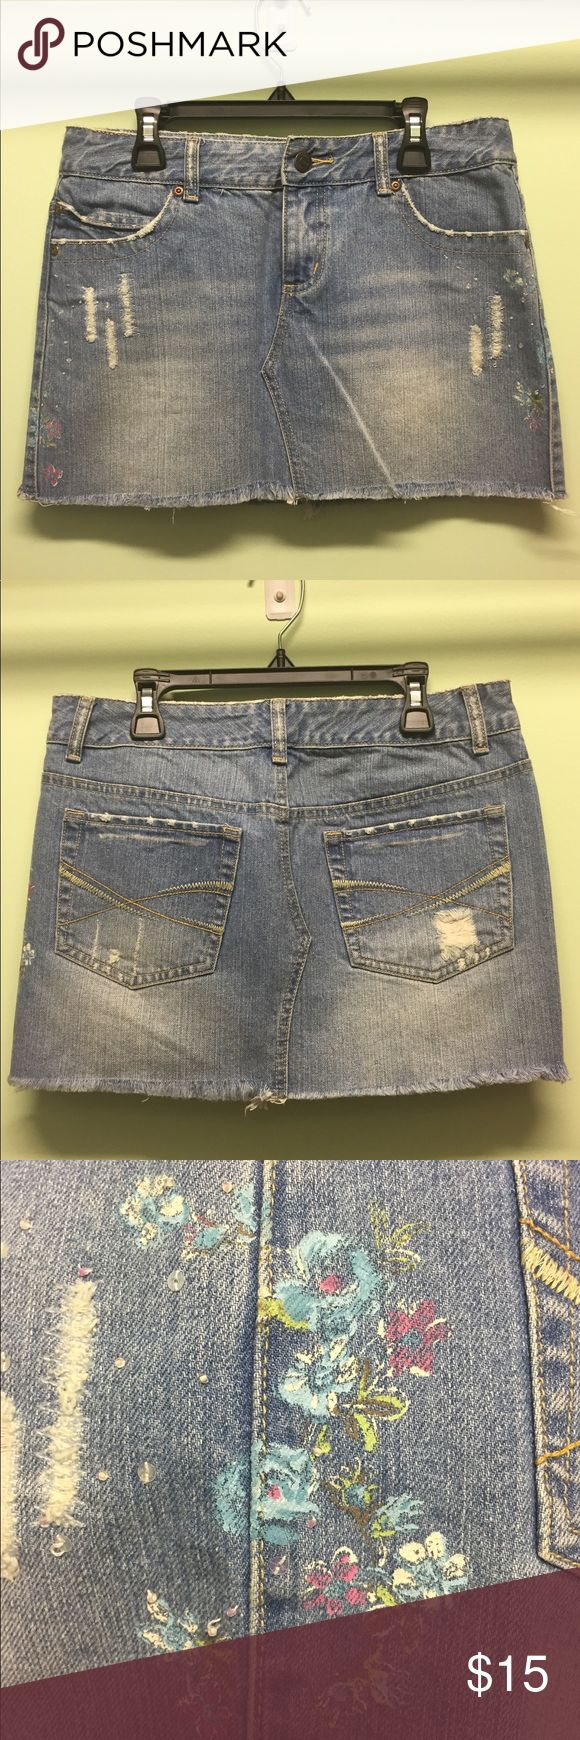 "Denim mini skirt NWOT. Denim mini skirt with decorative flower accent. Area designed to look ""ripped"" is re-enforced with stitching to prevent unraveling or damage. Aeropostale Skirts Mini"